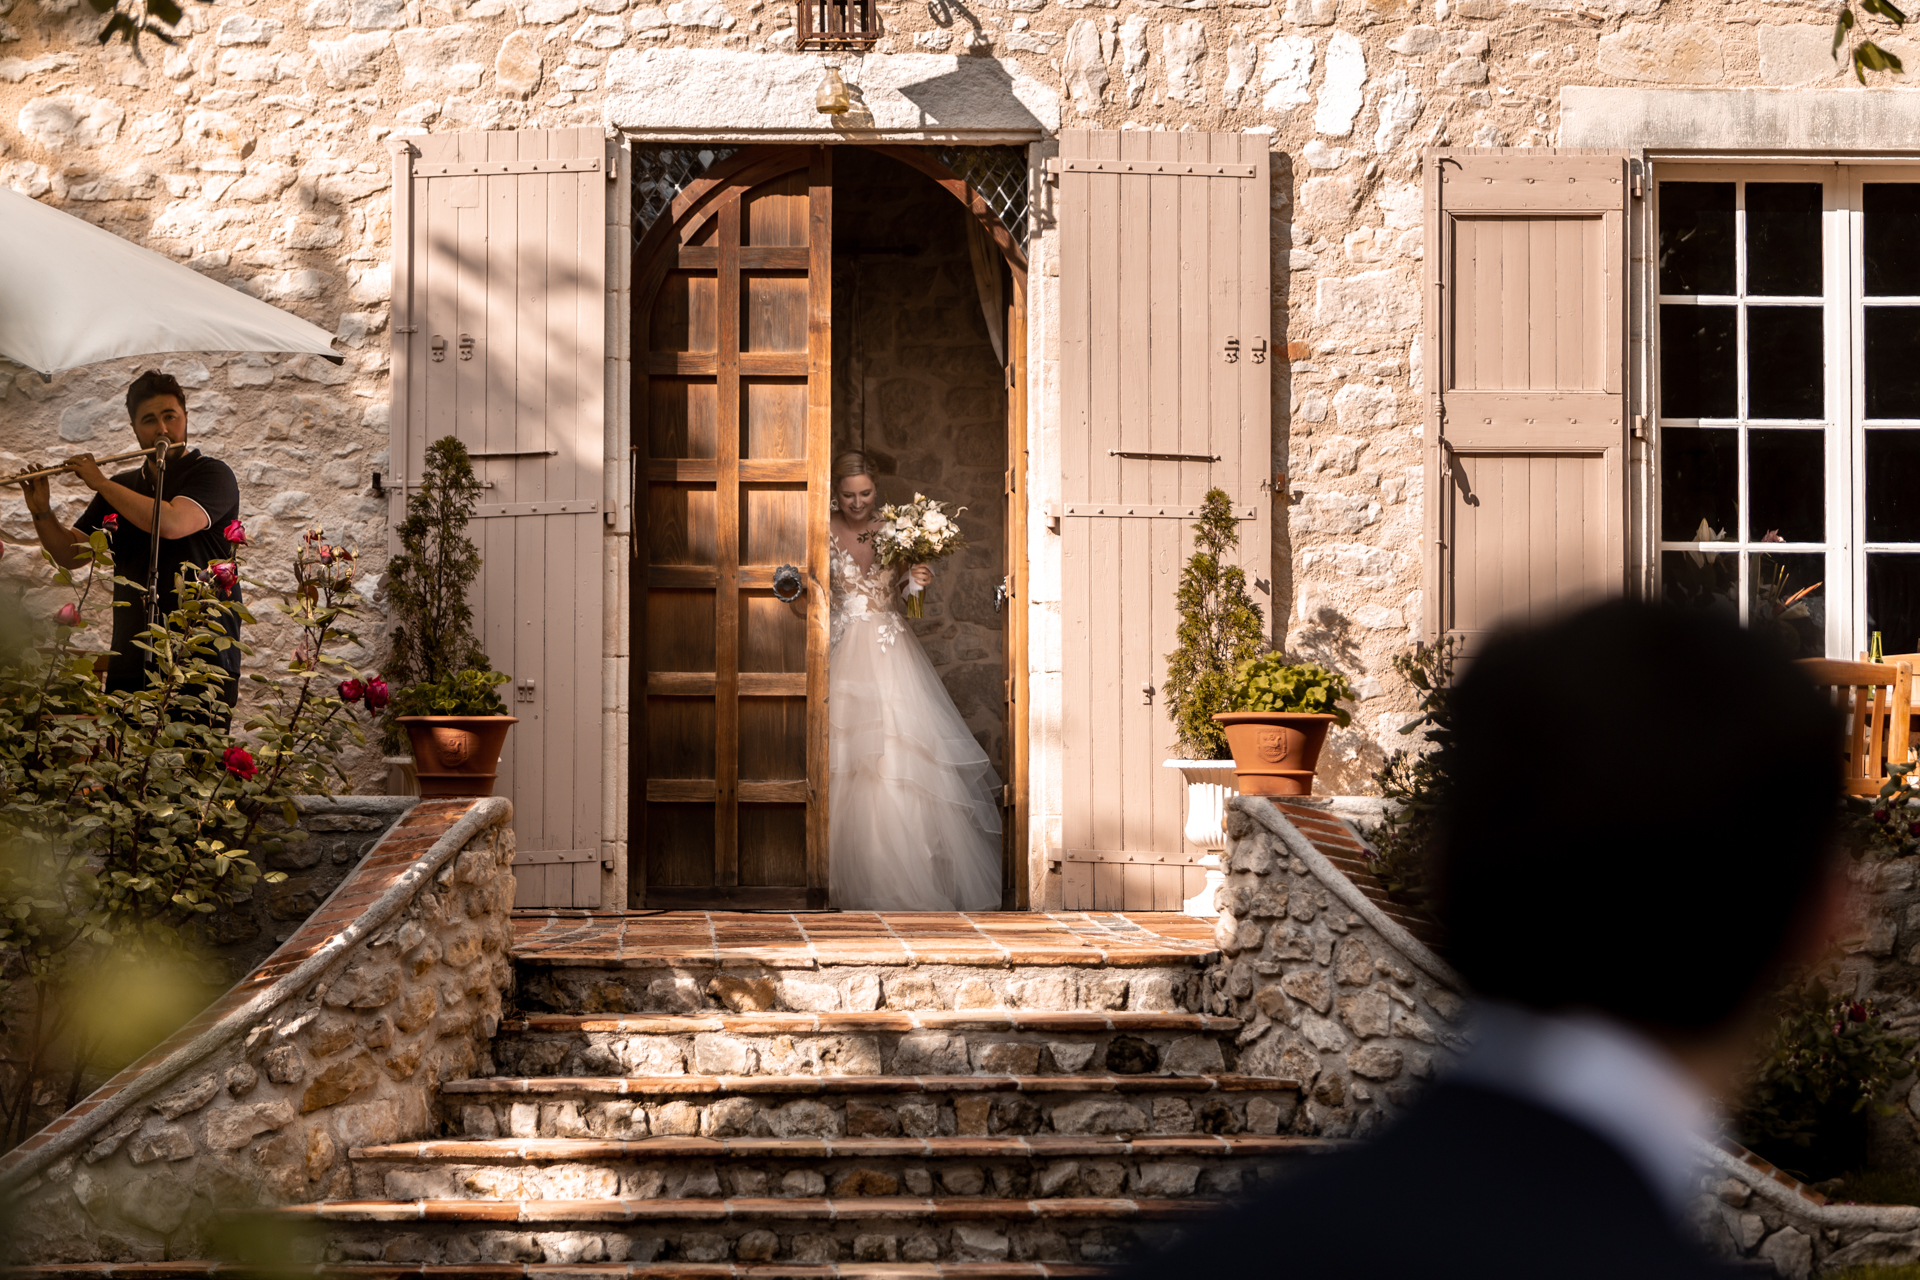 Chateau Brametourte, Lautrec, Tarn, Wedding Venue Image | The bride arrived for the ceremony while a musician played the flute